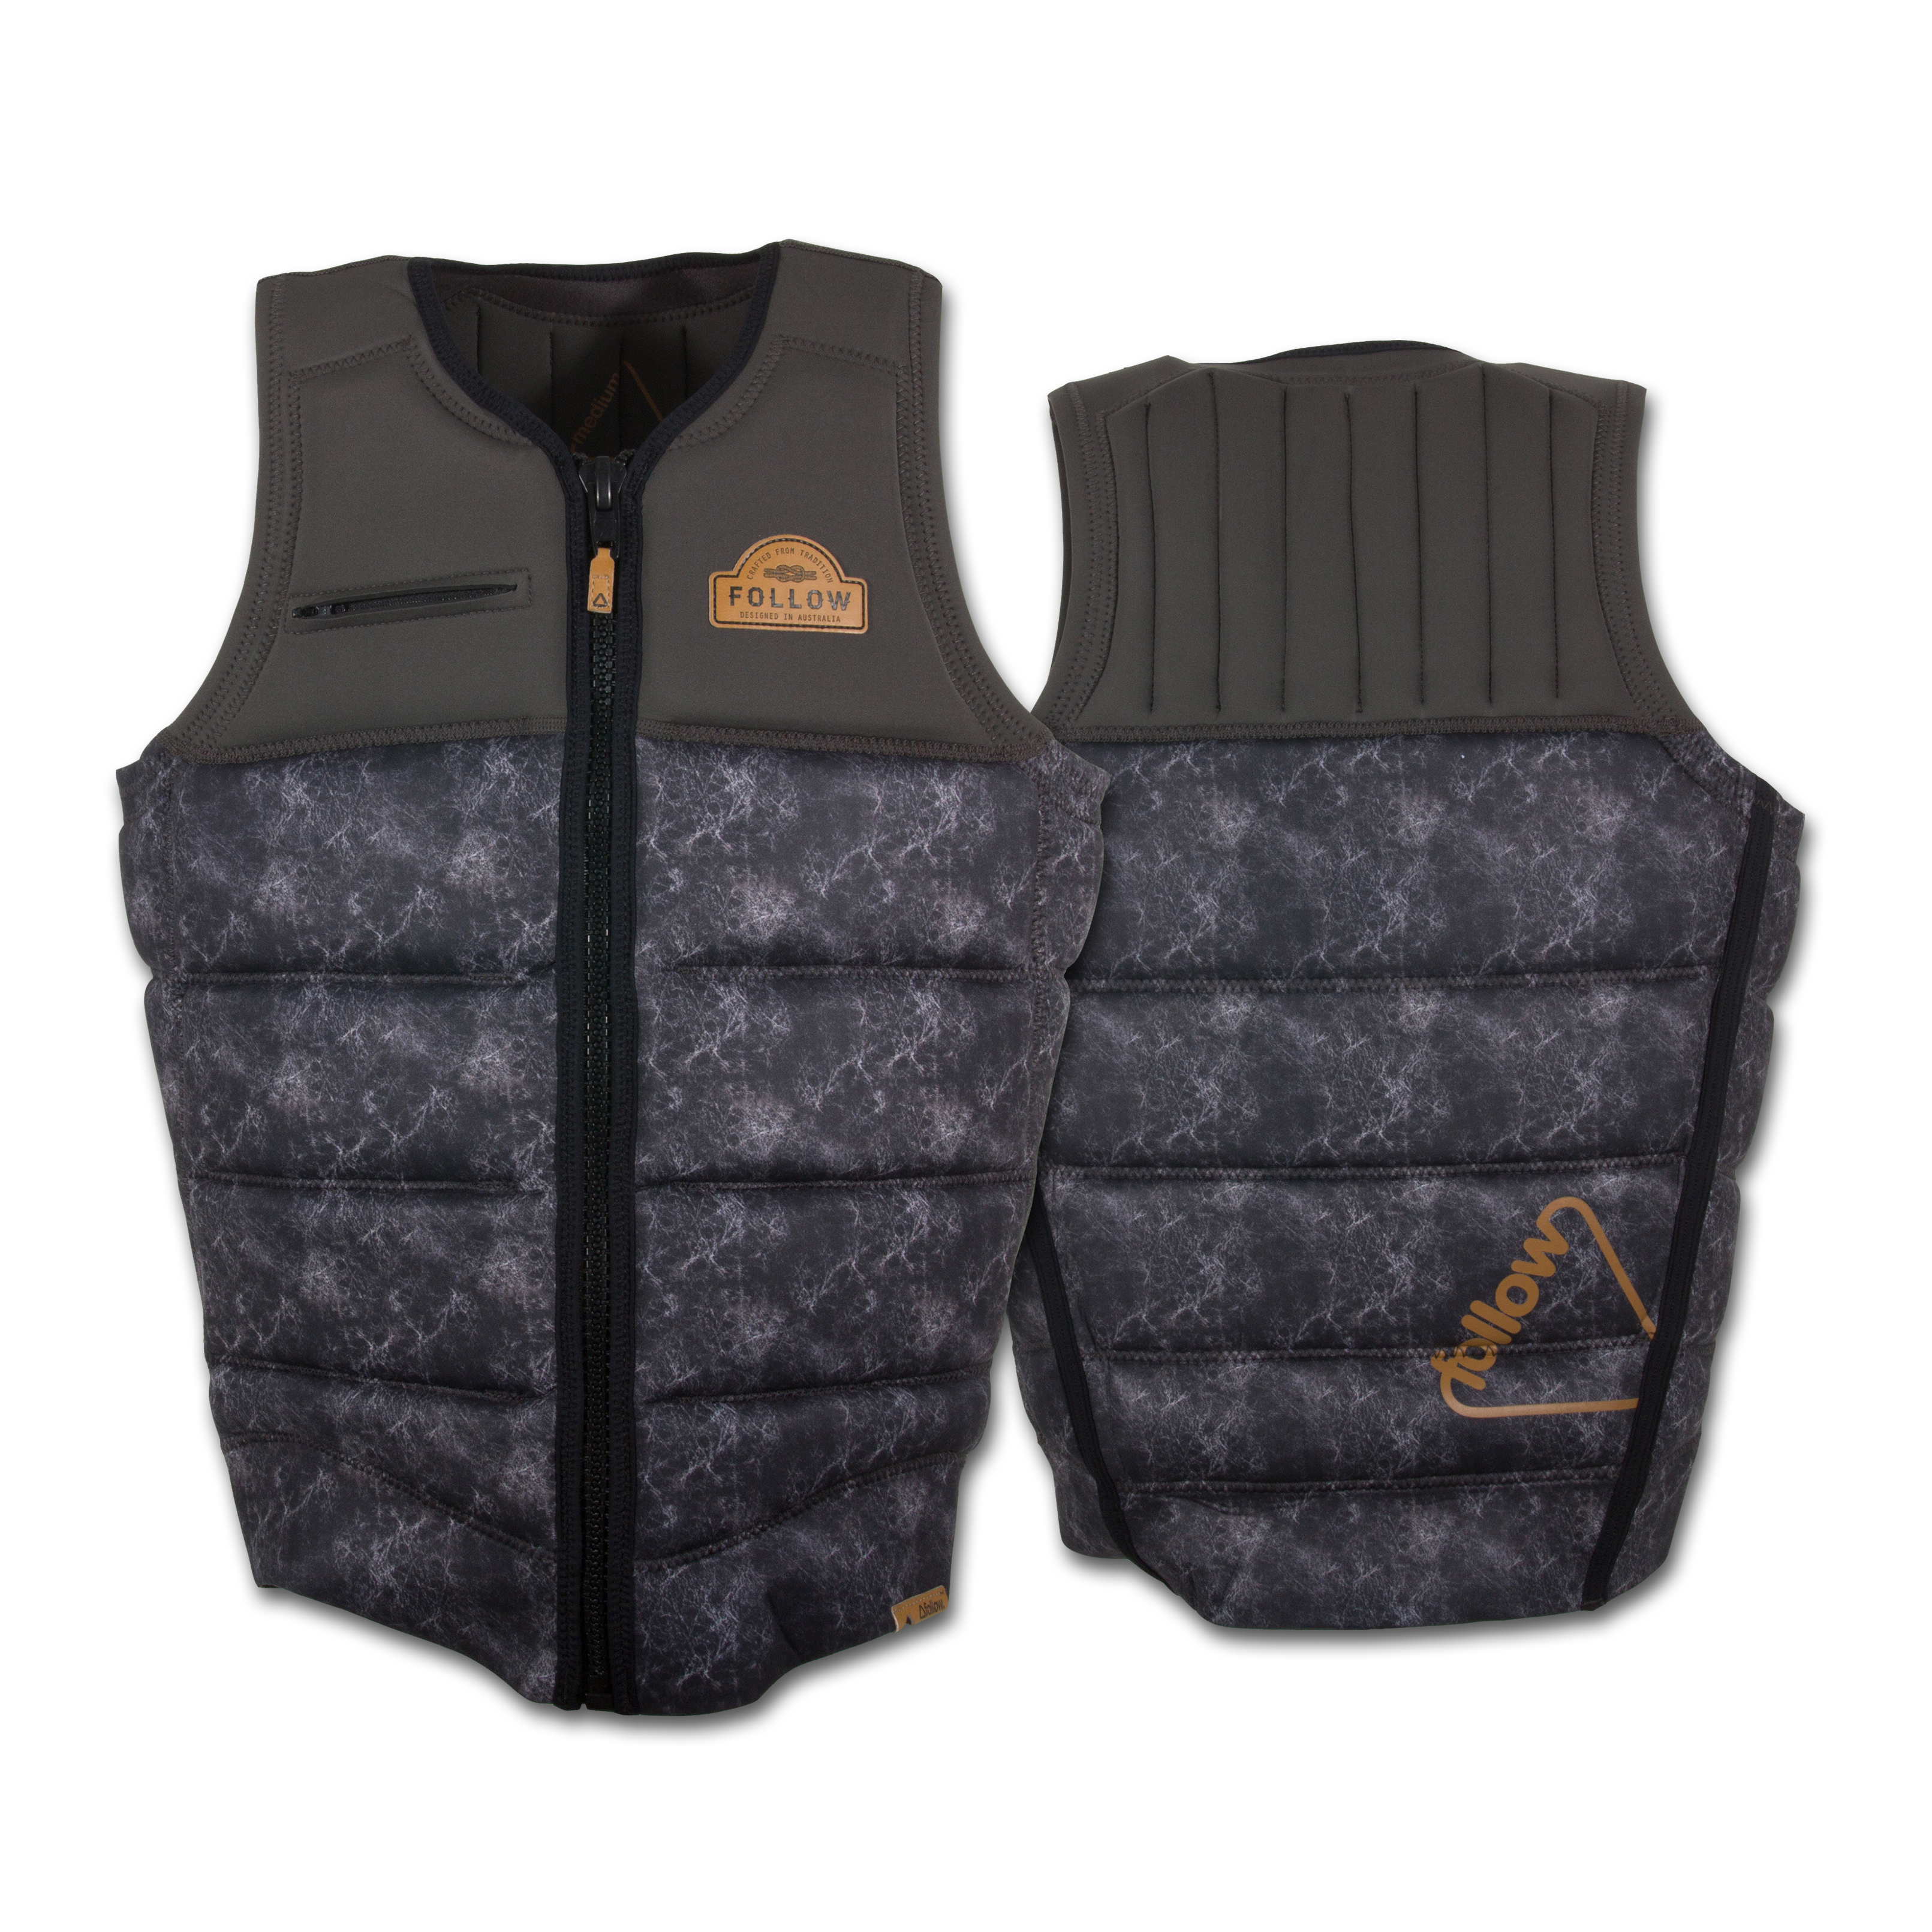 BP PRO IMPACT VEST BLACK FOLLOW 2016